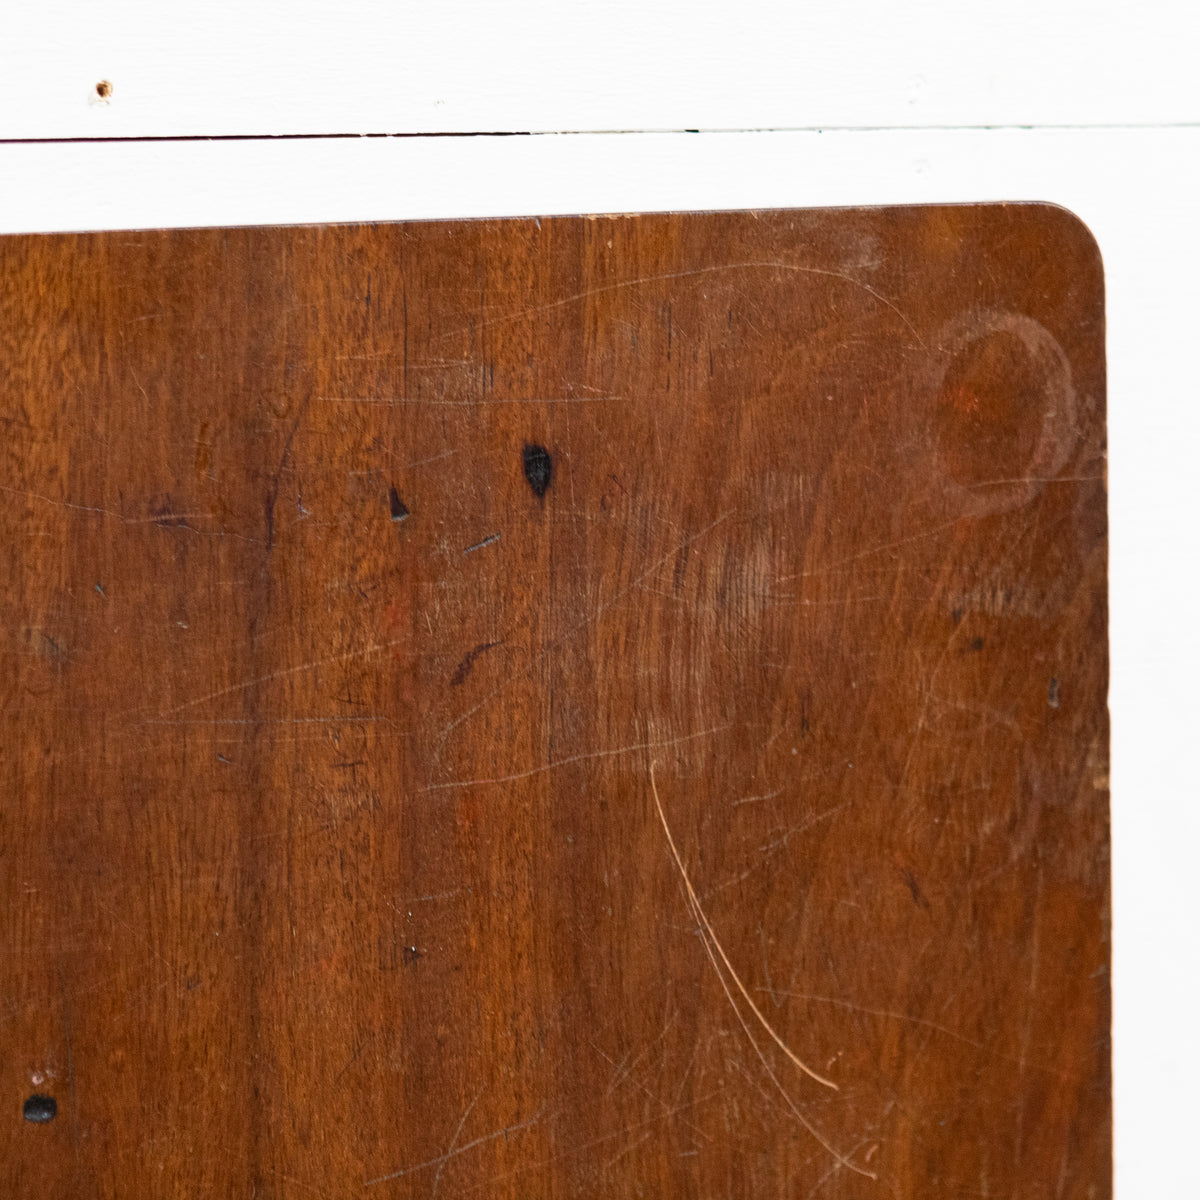 Reclaimed Teak / Iroko Worktop 120cm X 119cm | The Architectural Forum